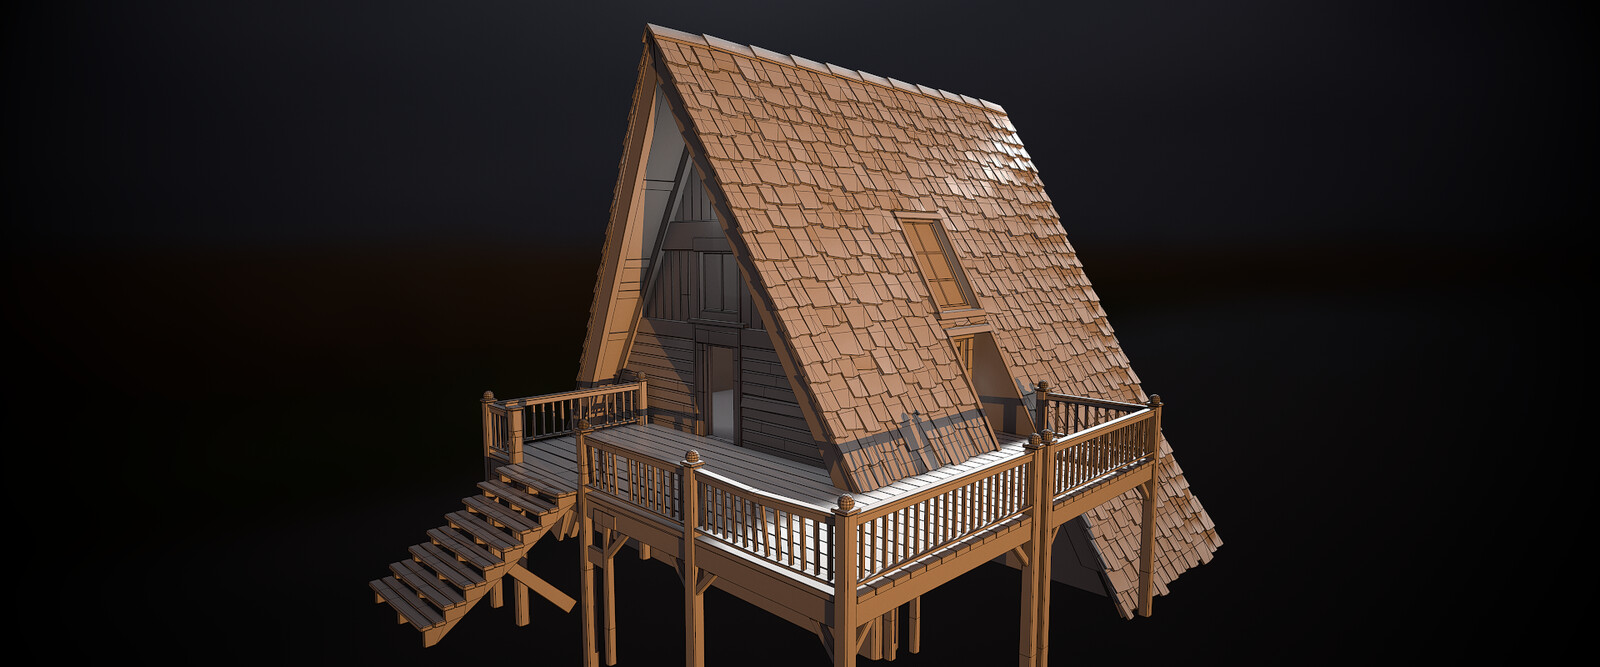 Cabin Wireframe